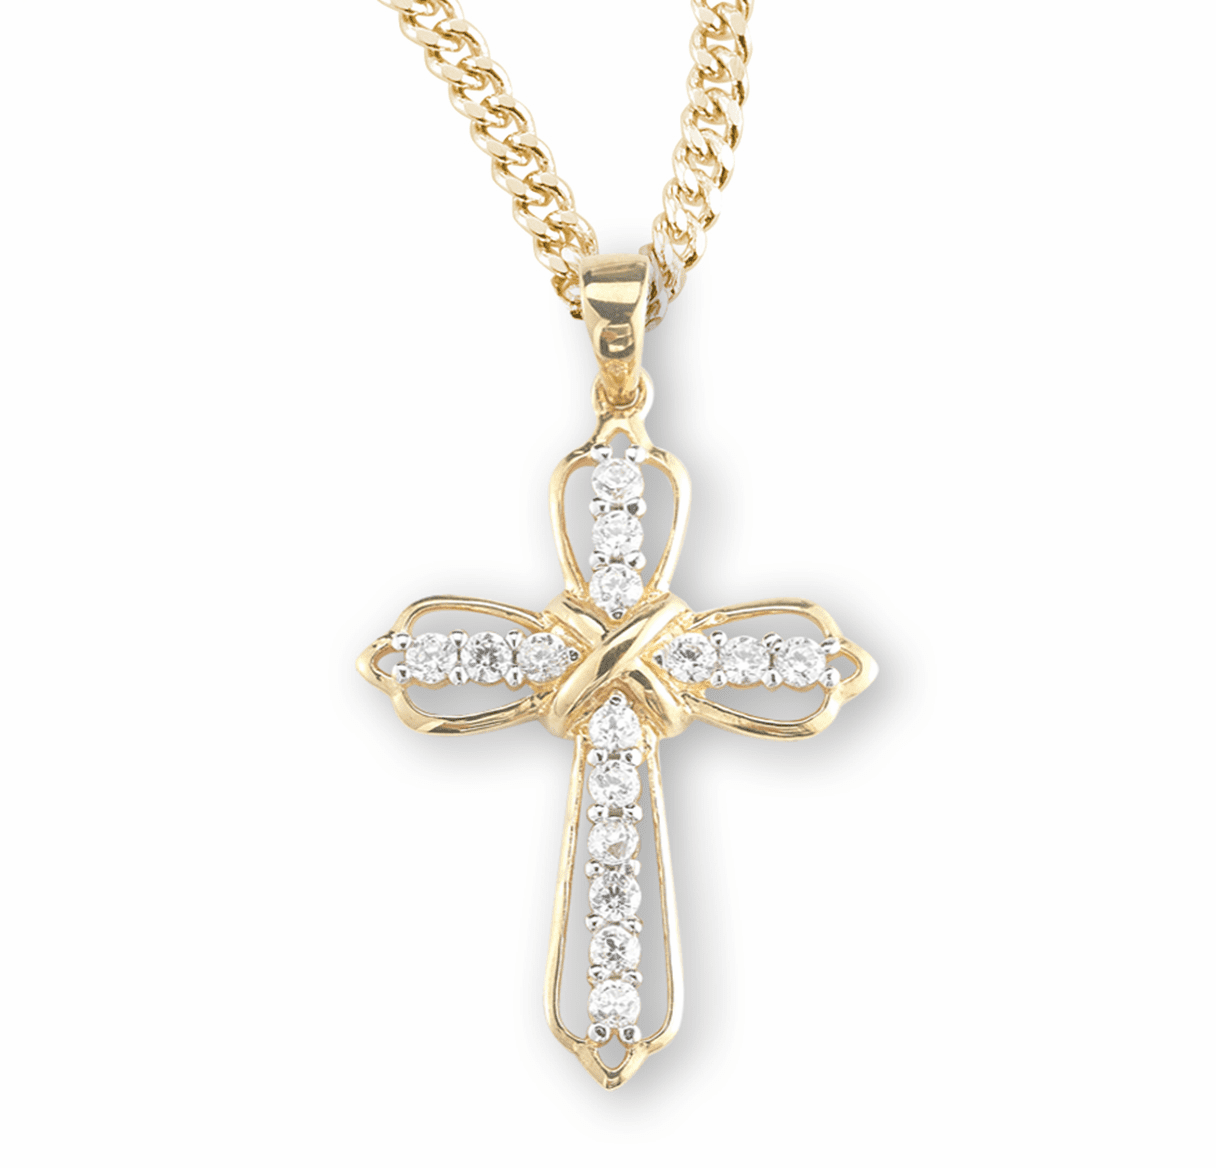 HMH Religious Gold over Sterling Silver Cubic Zircon Crystal Cross Pendant Necklace